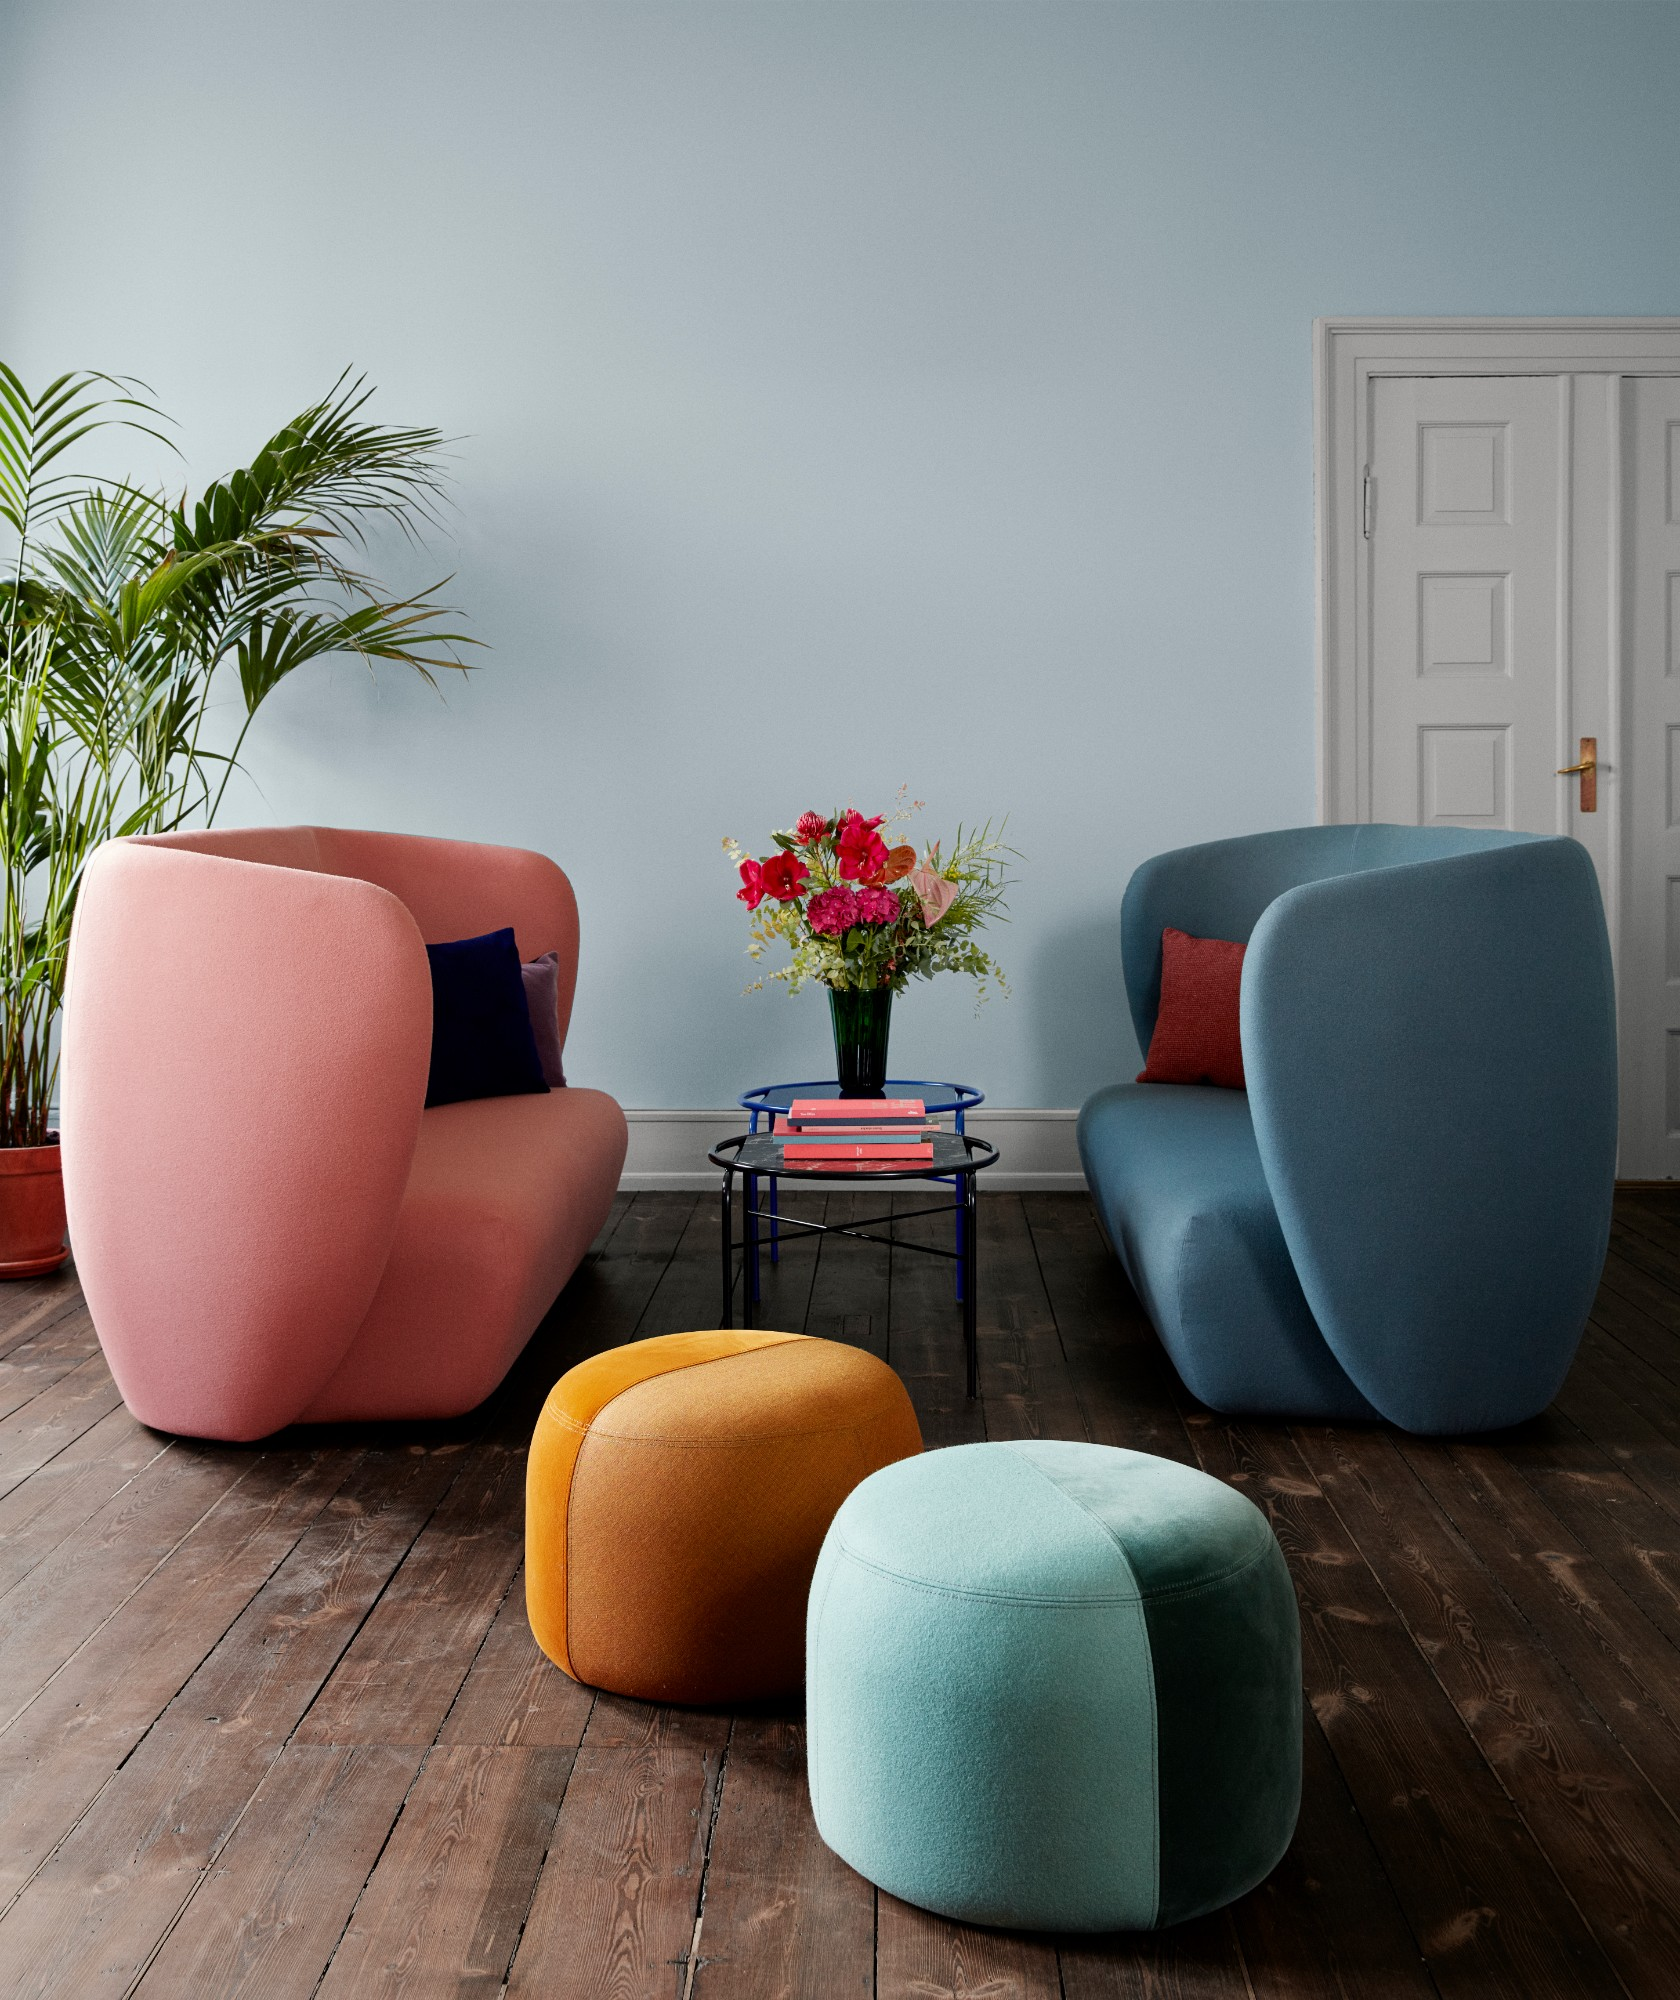 Charlotte Høncke 'Haven' 3-Seater and 'Dainty' Pouf Image Credit: Warm Nordic